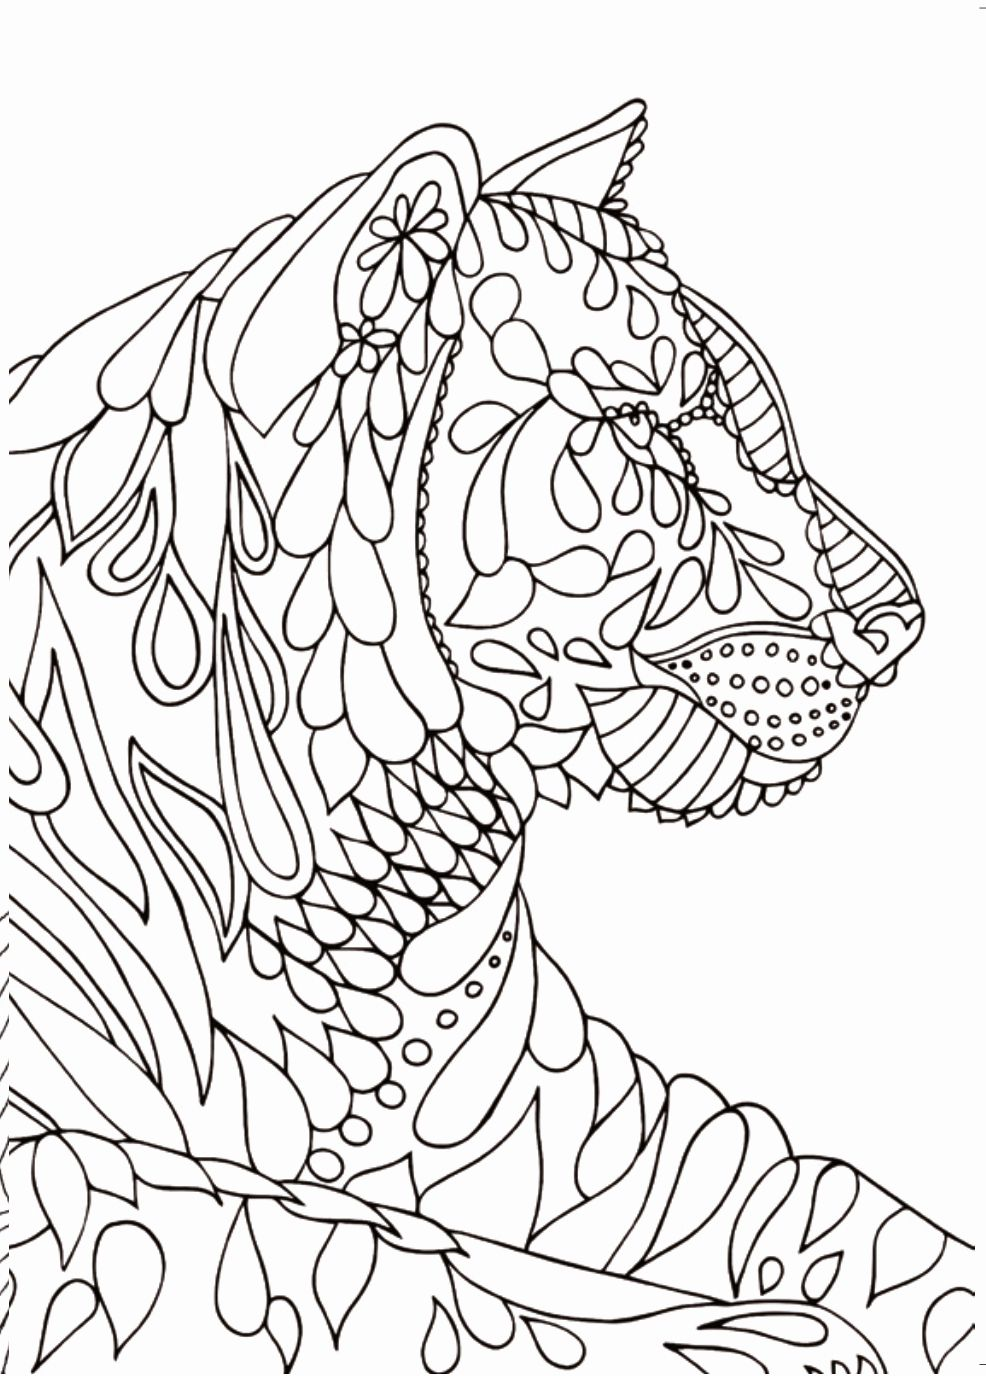 Animal Coloring Pages For 6 Year Olds Fresh Printable Mindfulness Colouring Printable 360 Degree Animal Coloring Pages Coloring Books Cartoon Coloring Pages